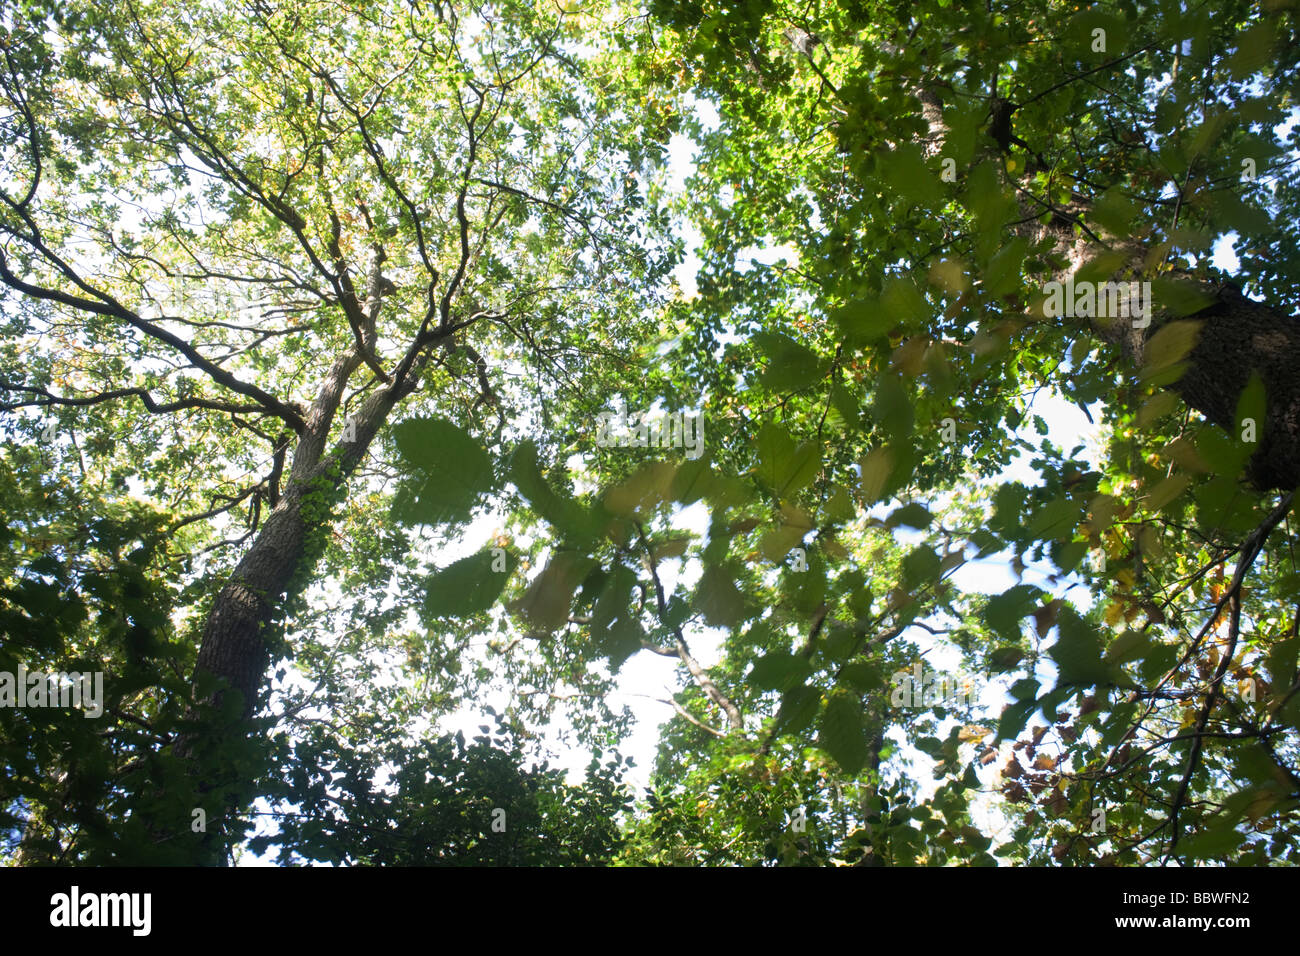 Summer sunlight filters through the old boughs and green foliage of swaying oak trees in the ancient forest of Sydenham - Stock Image